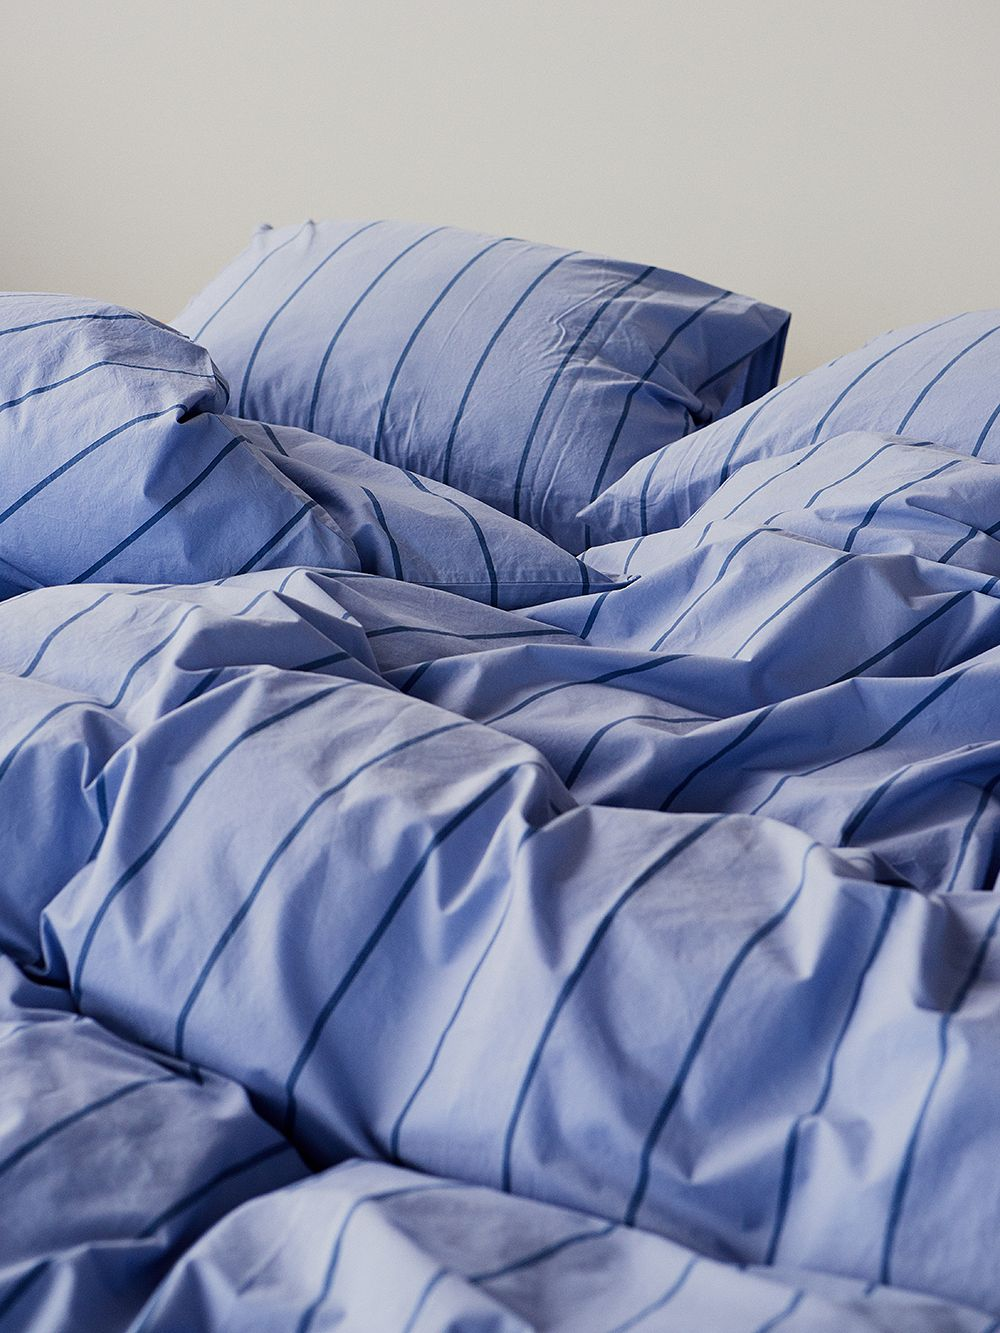 Tekla's striped duvet covers and pillow shams on a bed.